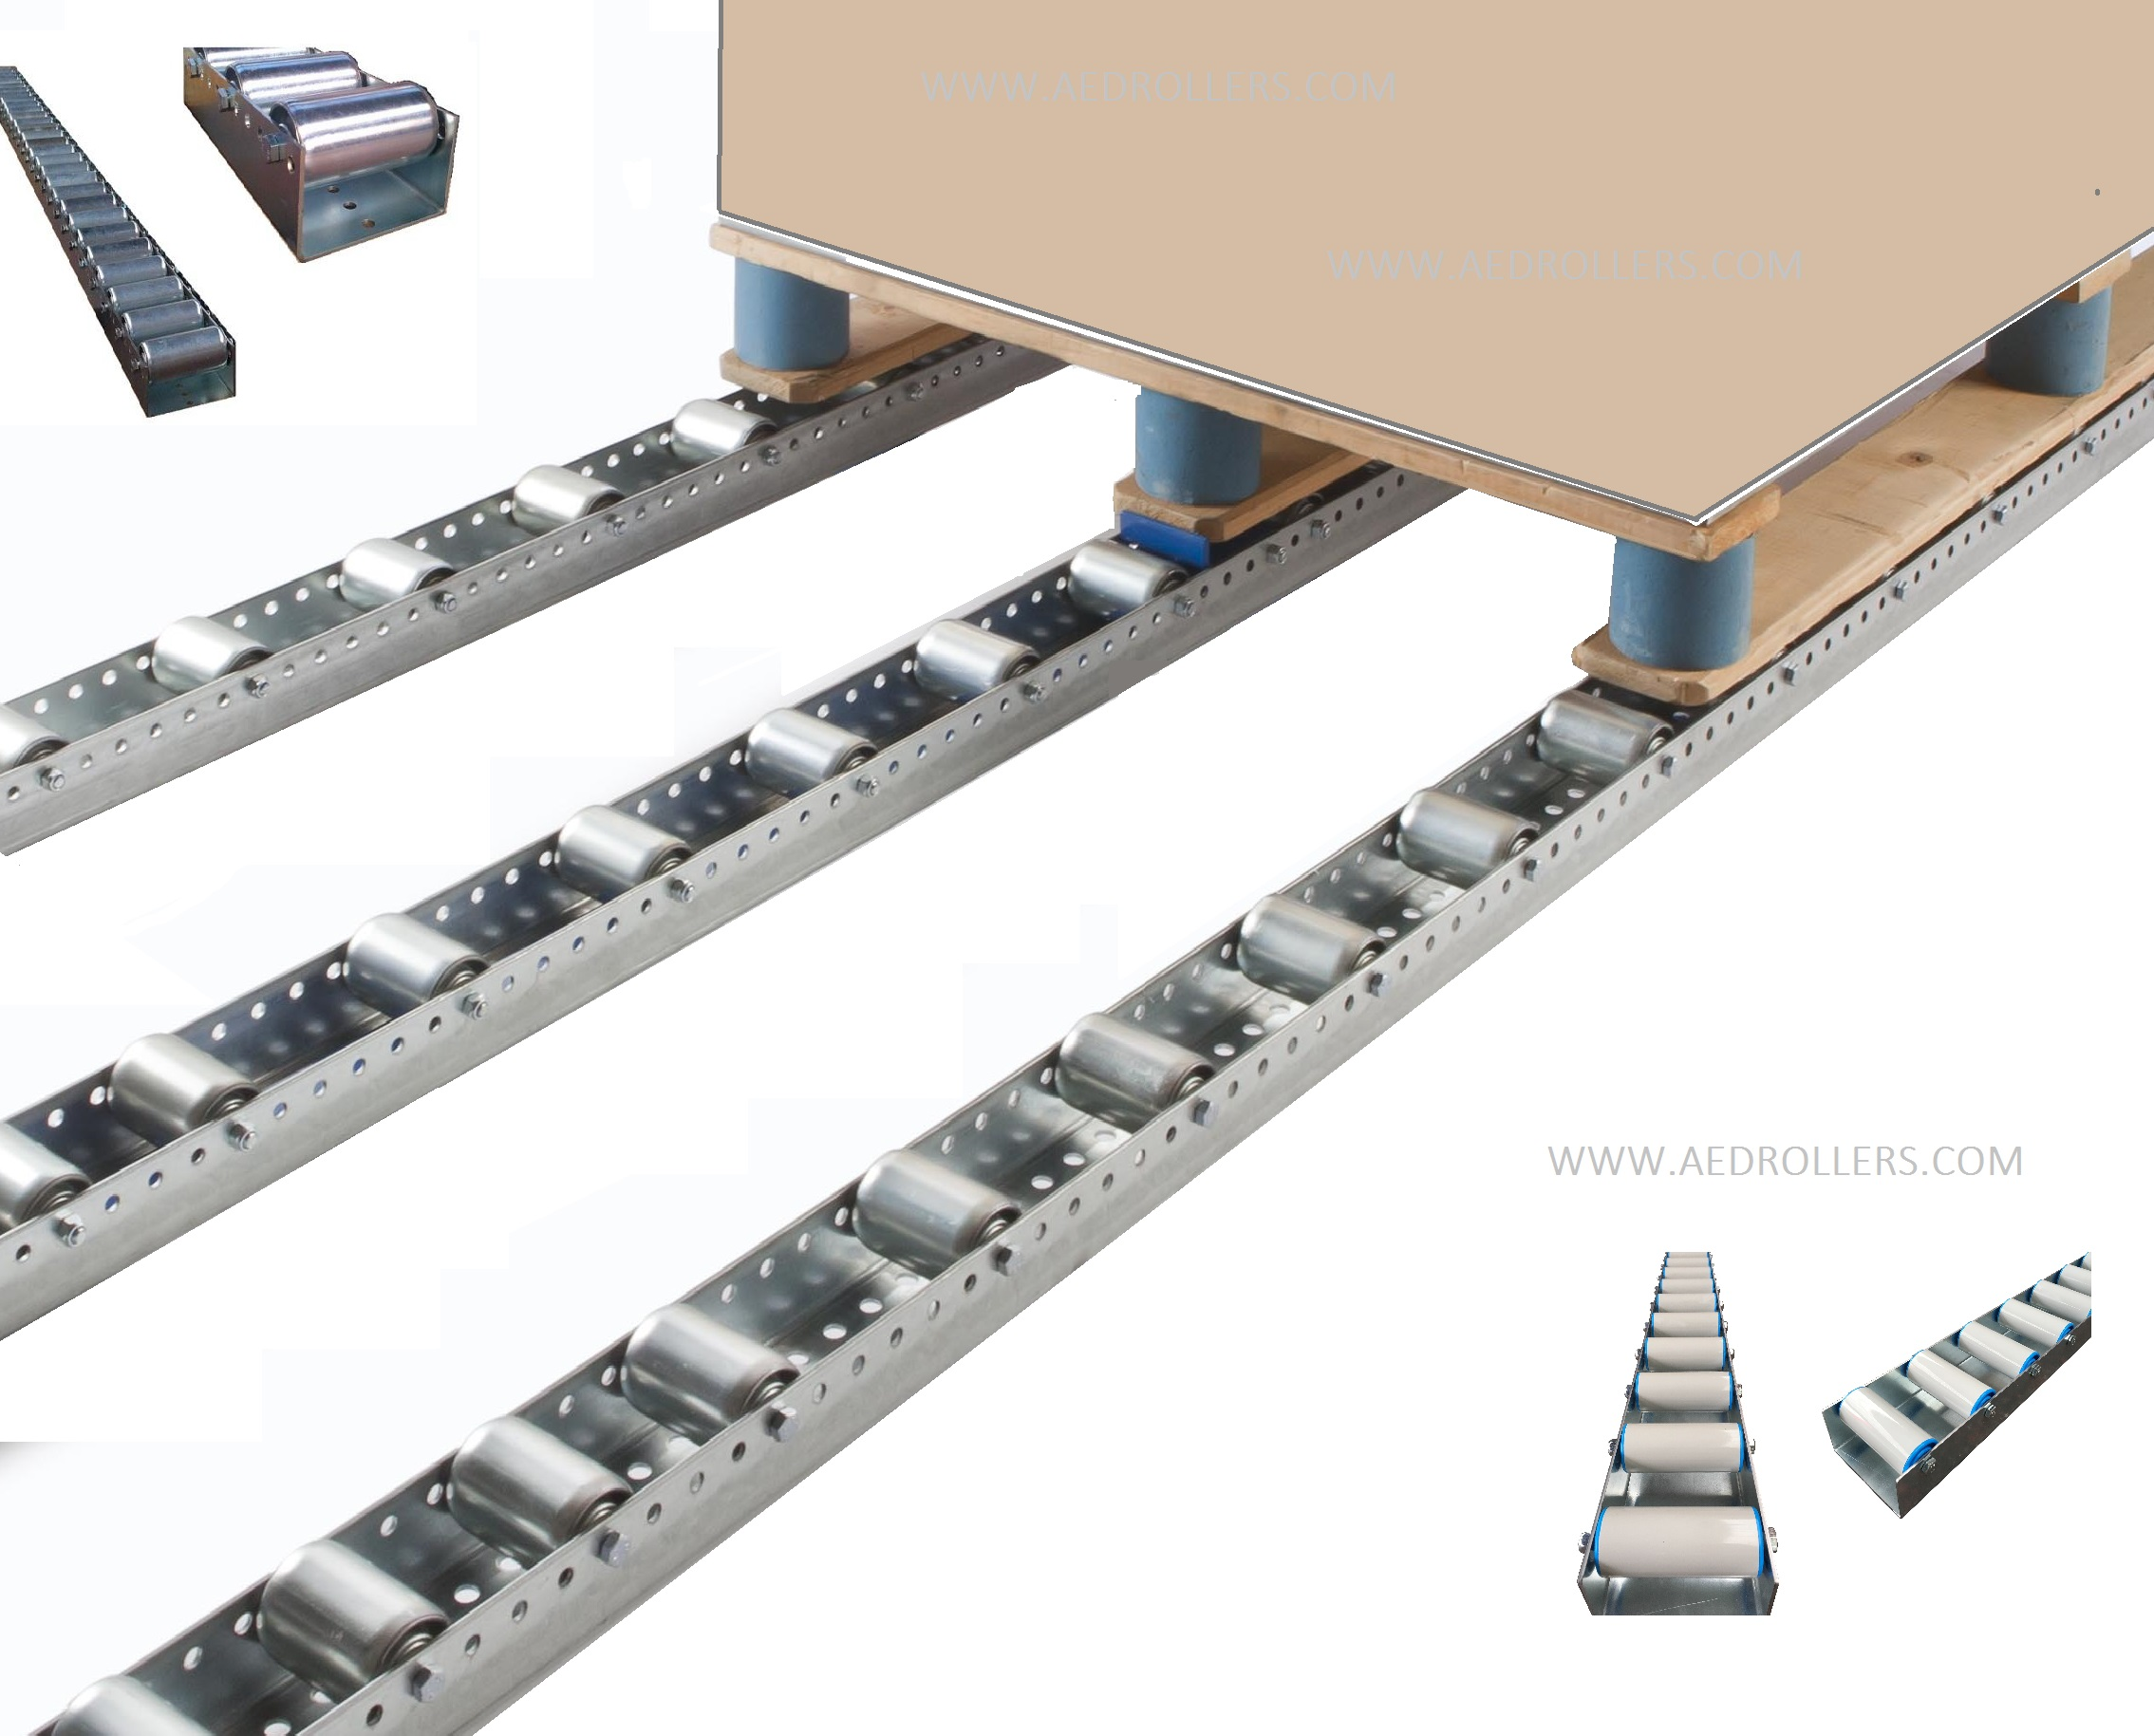 Pallet live storage floor conveyor 104mm Pitch(NR2000 pallet tack)